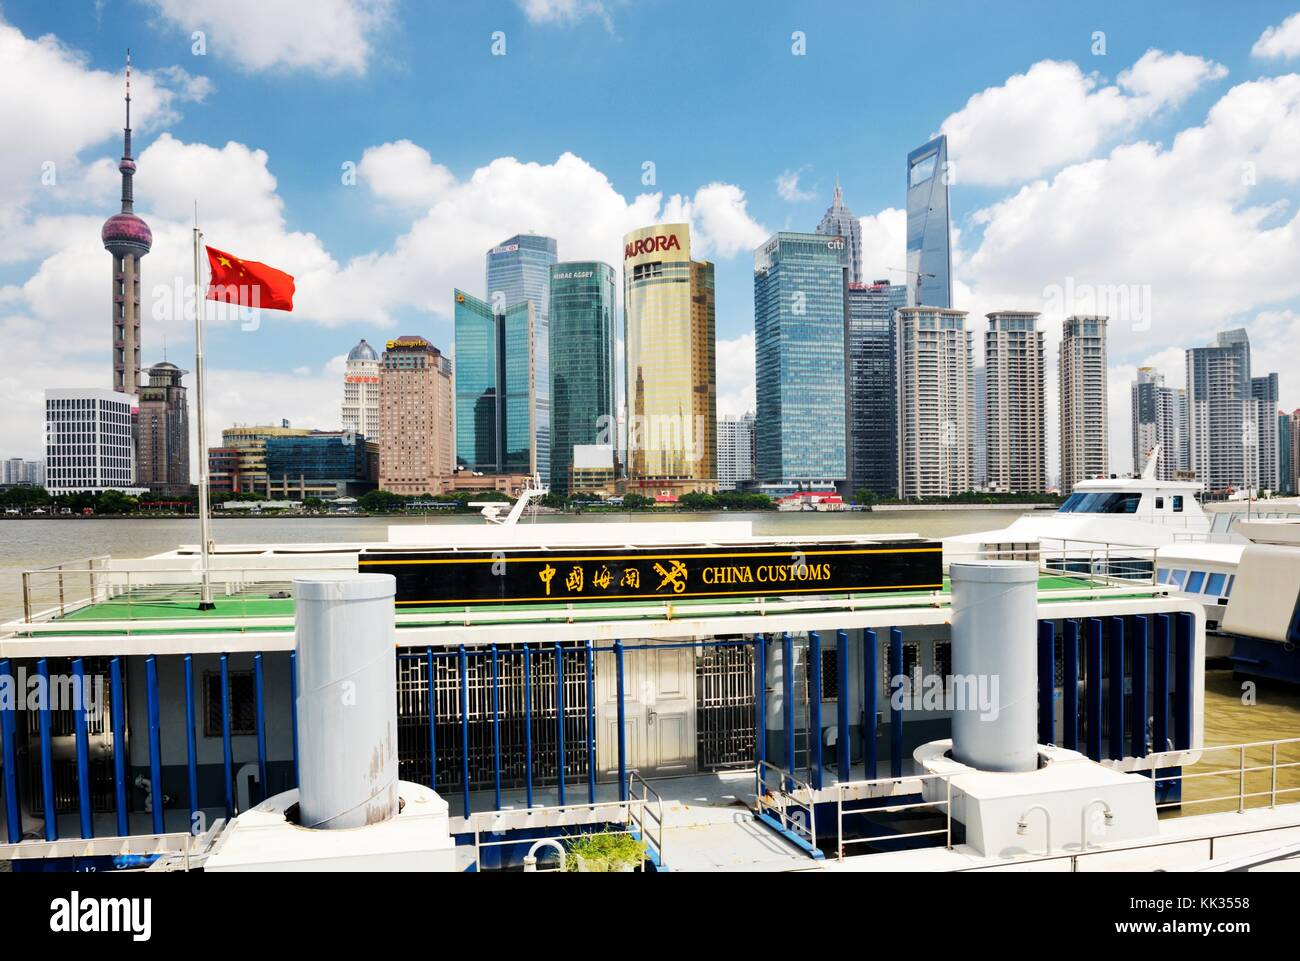 Shanghai, China. Pudong skyline seen across the Huangpu River from the China Customs office on The Bund, central - Stock Image